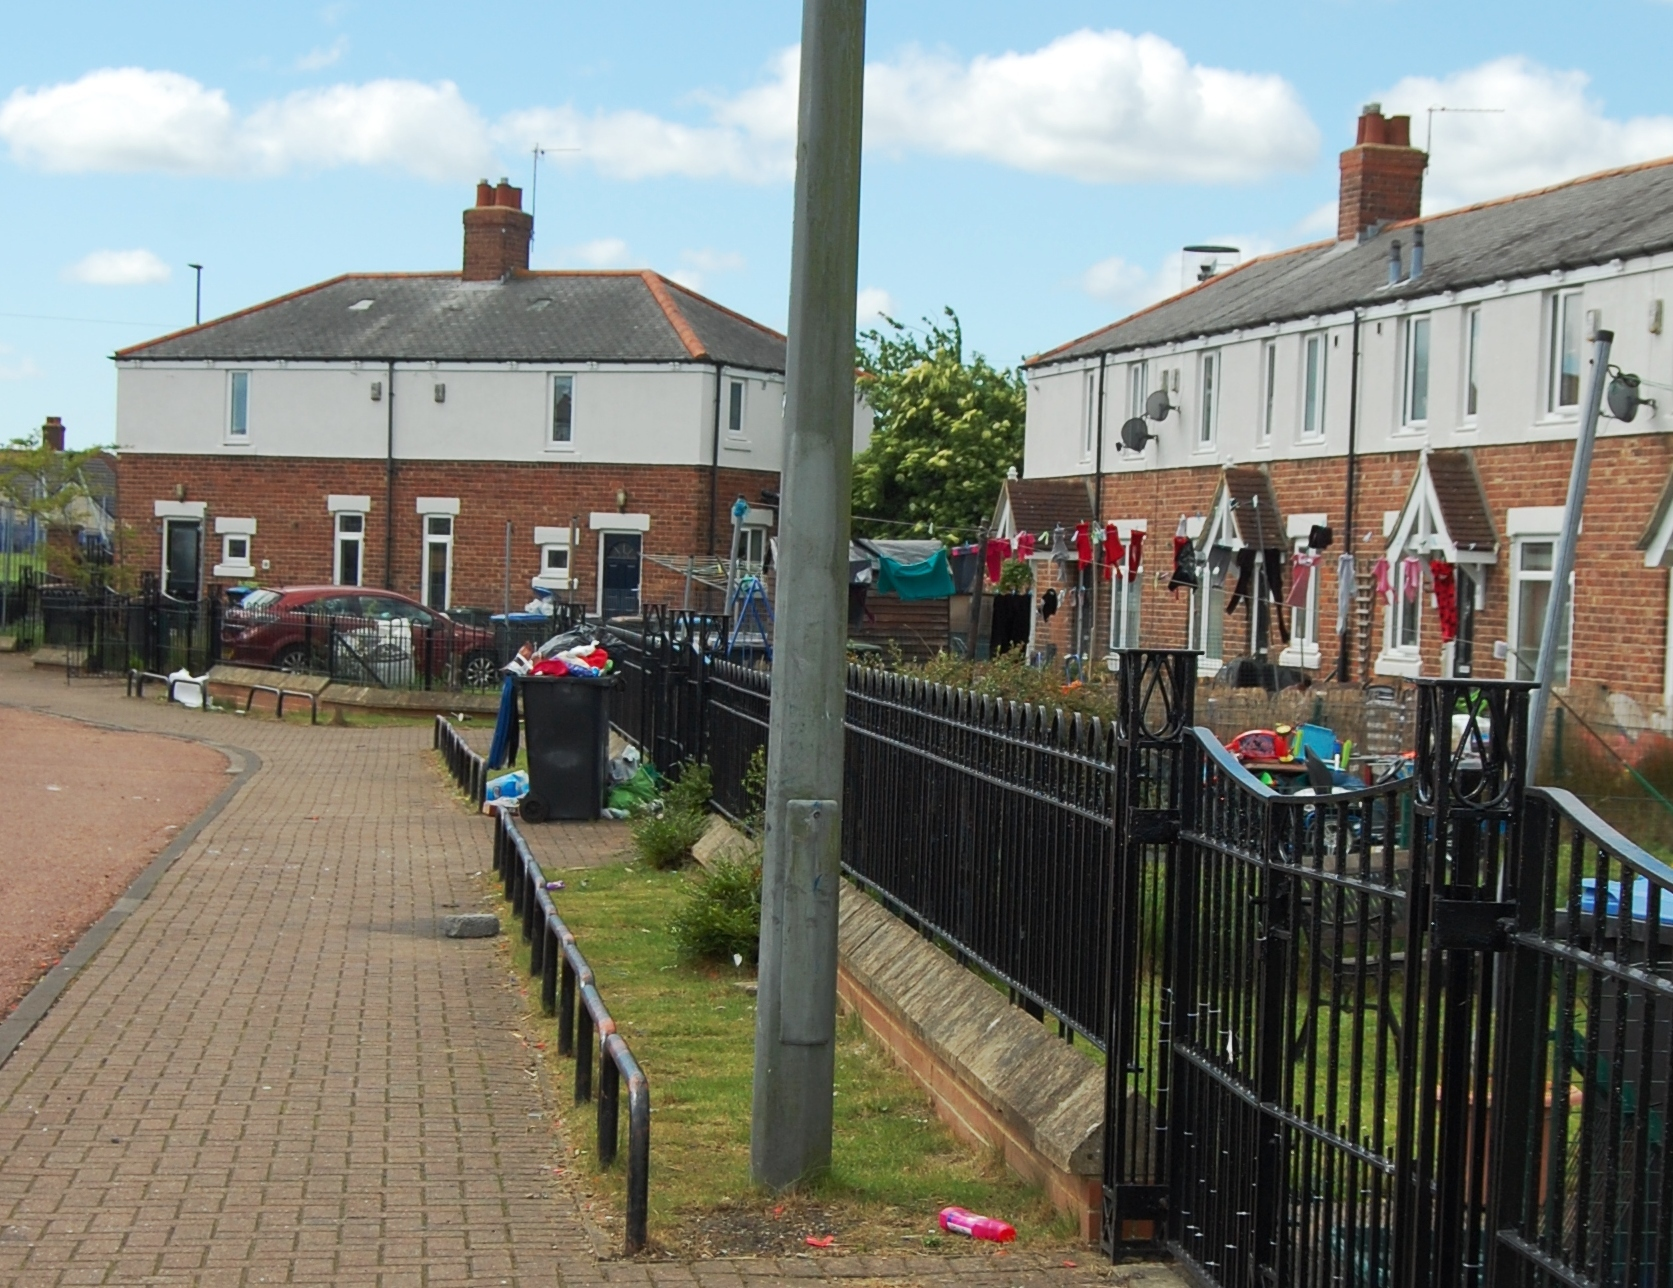 Oswald Close, which is part of the Sherburn Road Estate.